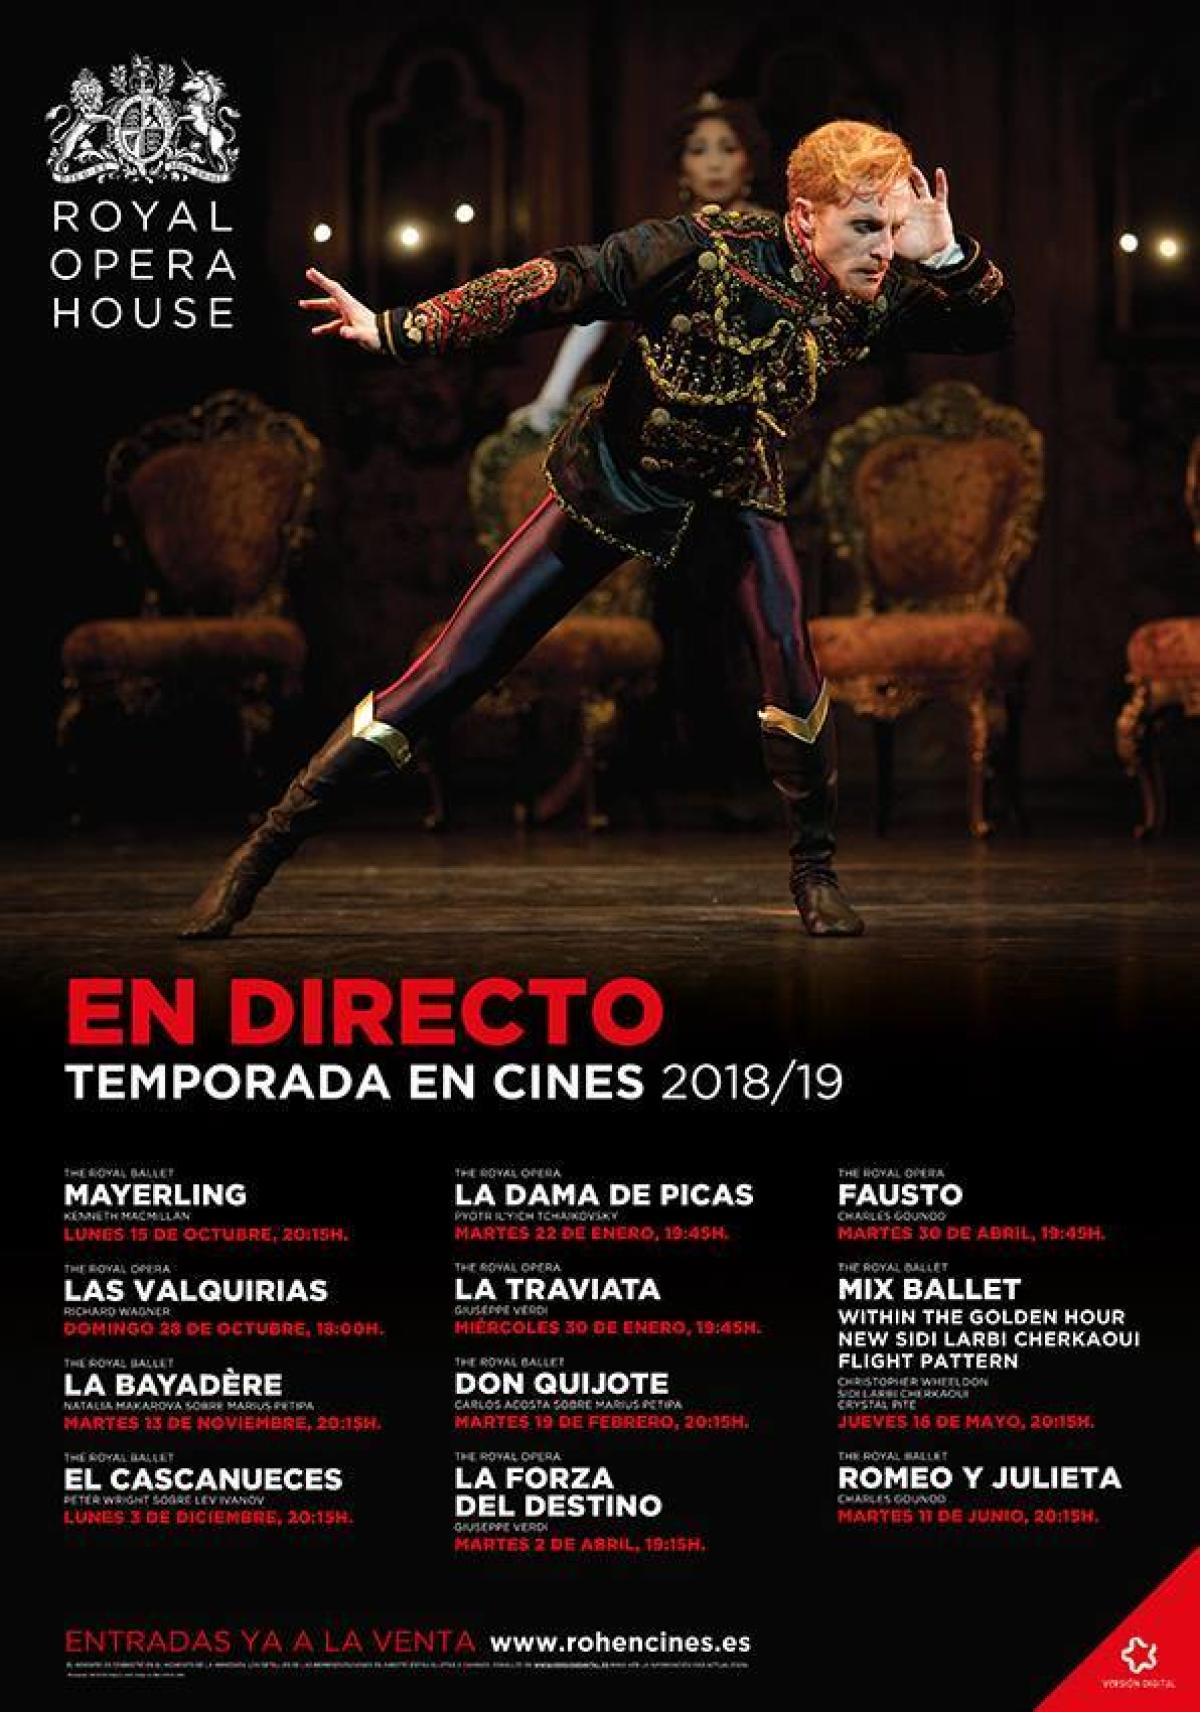 Temporada de ópera 2018-2019 de la Royal Opera House